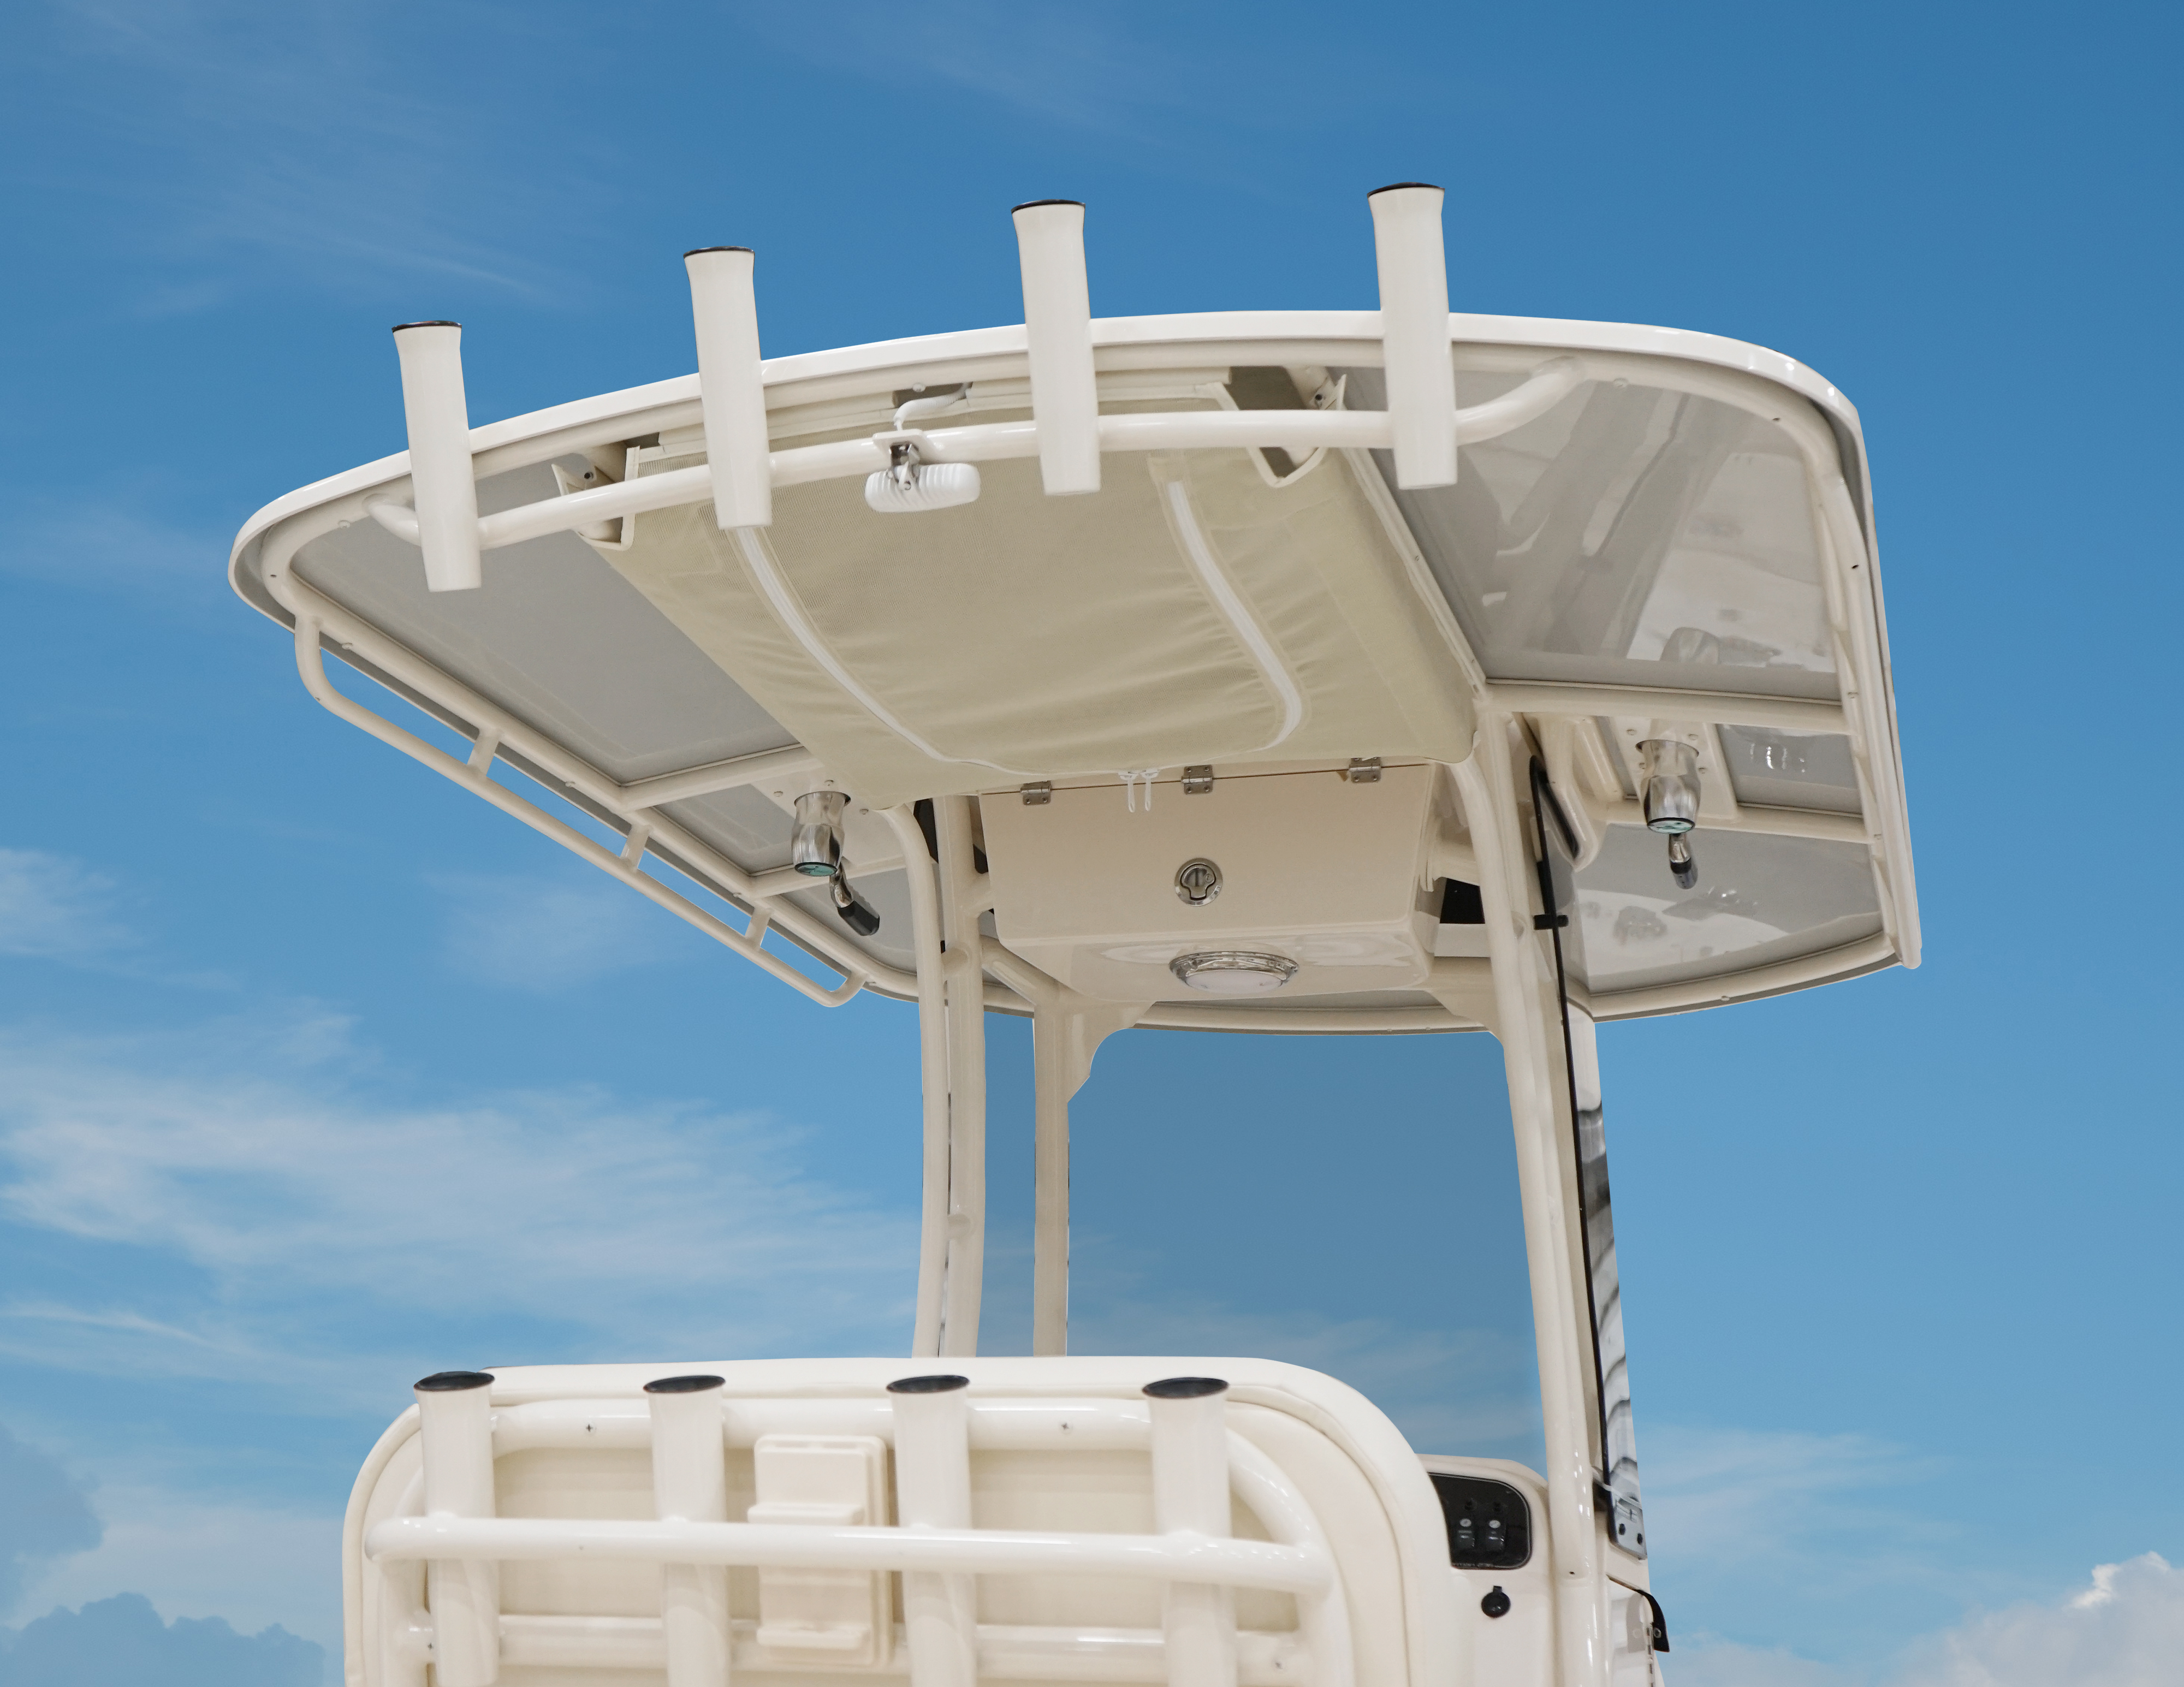 Underside T-Top color on the Fisherman 236 center console.